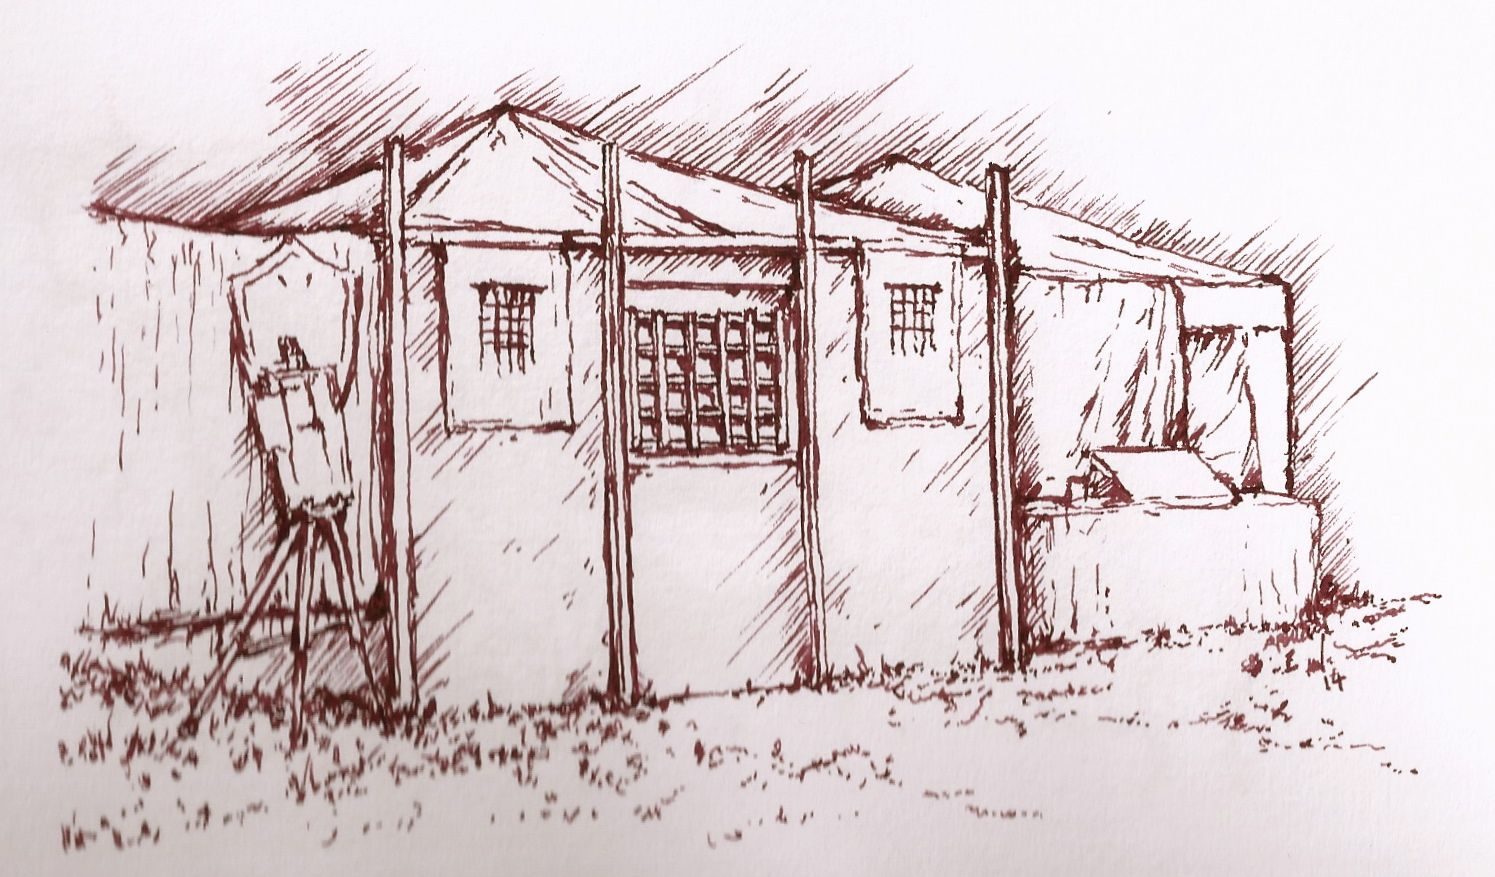 A pen and ink illustration of a Bankers' Kiosk, drawn by Alan Whittle whilst attending the LRP event (Derby) over the late BH weekend of May 2014